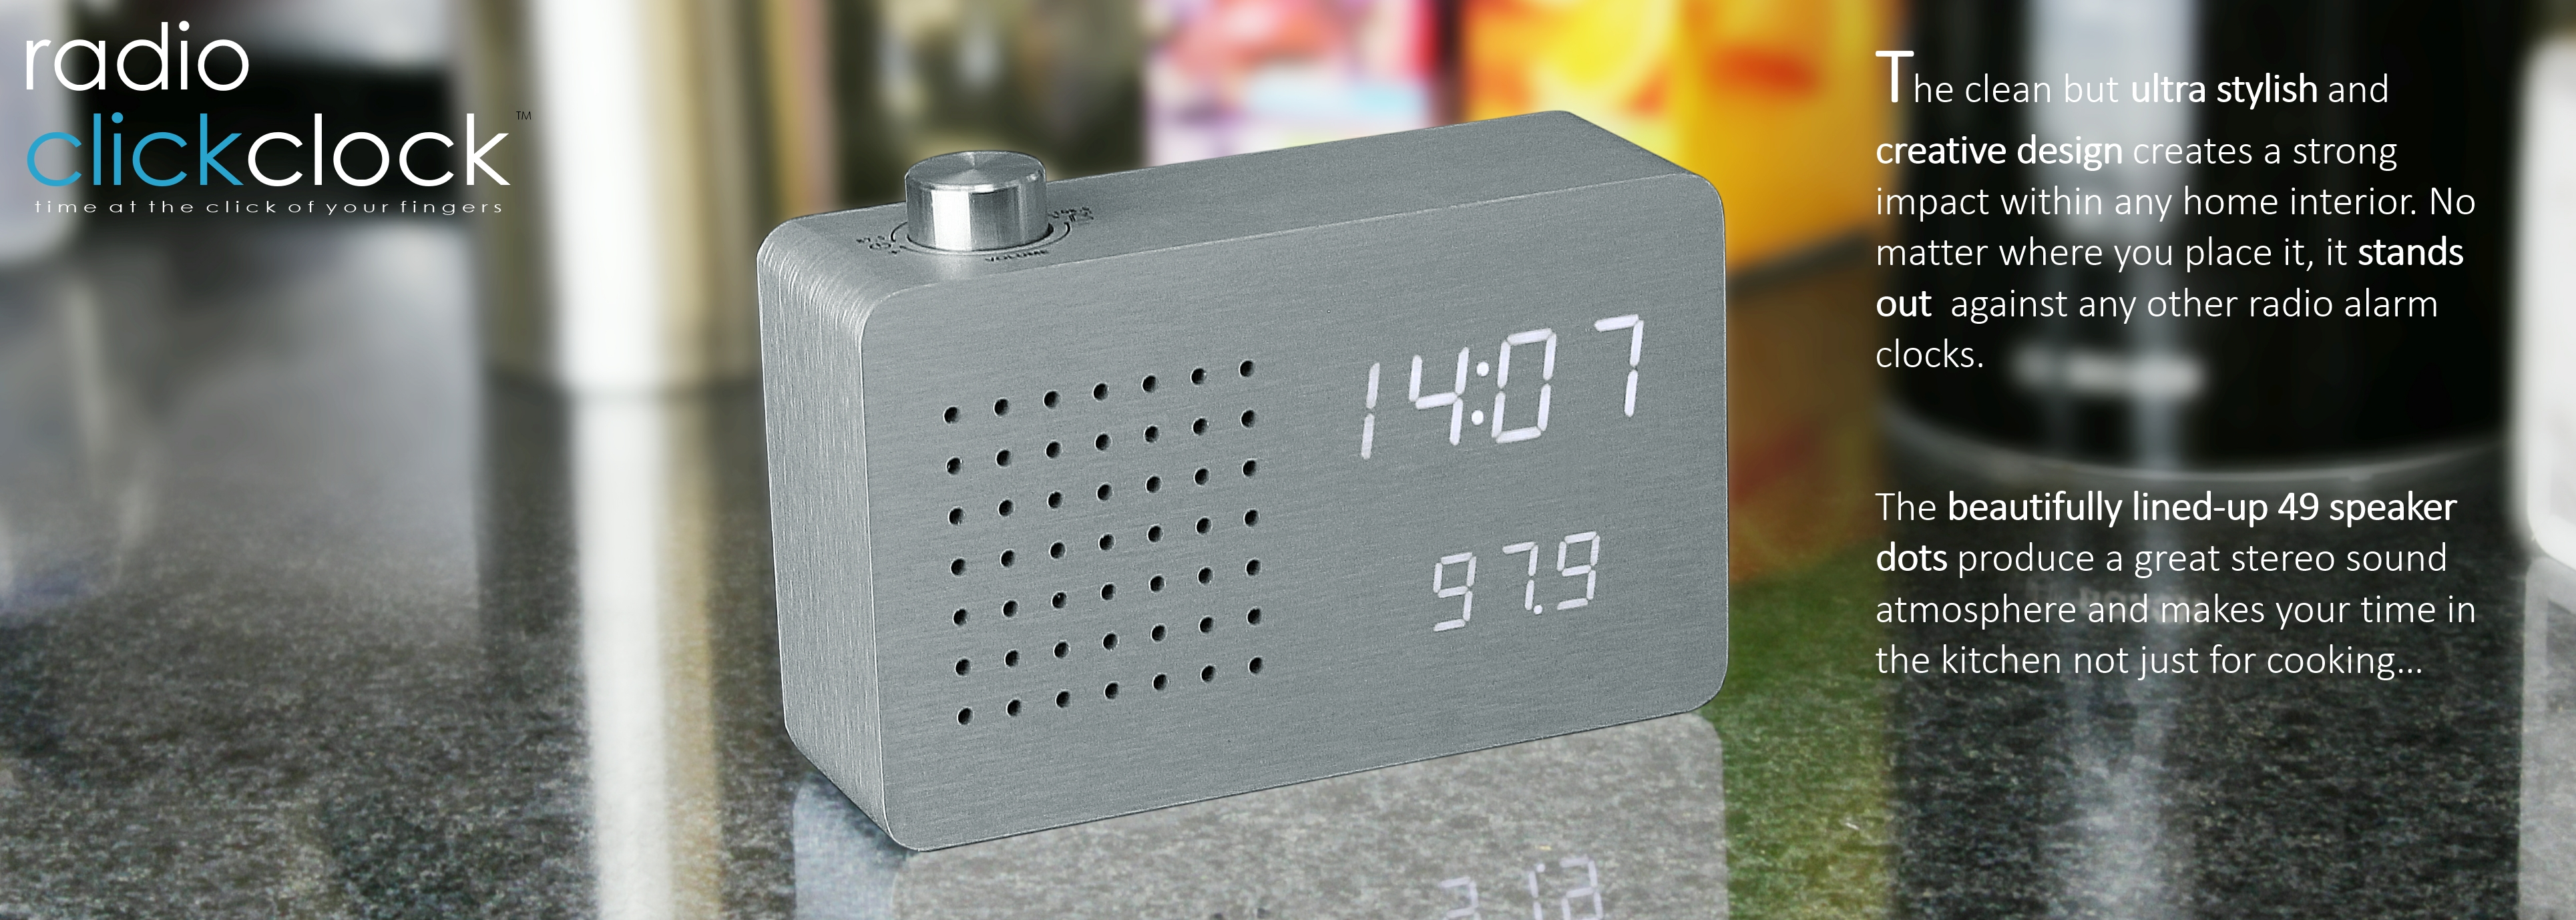 Radio Click Clock